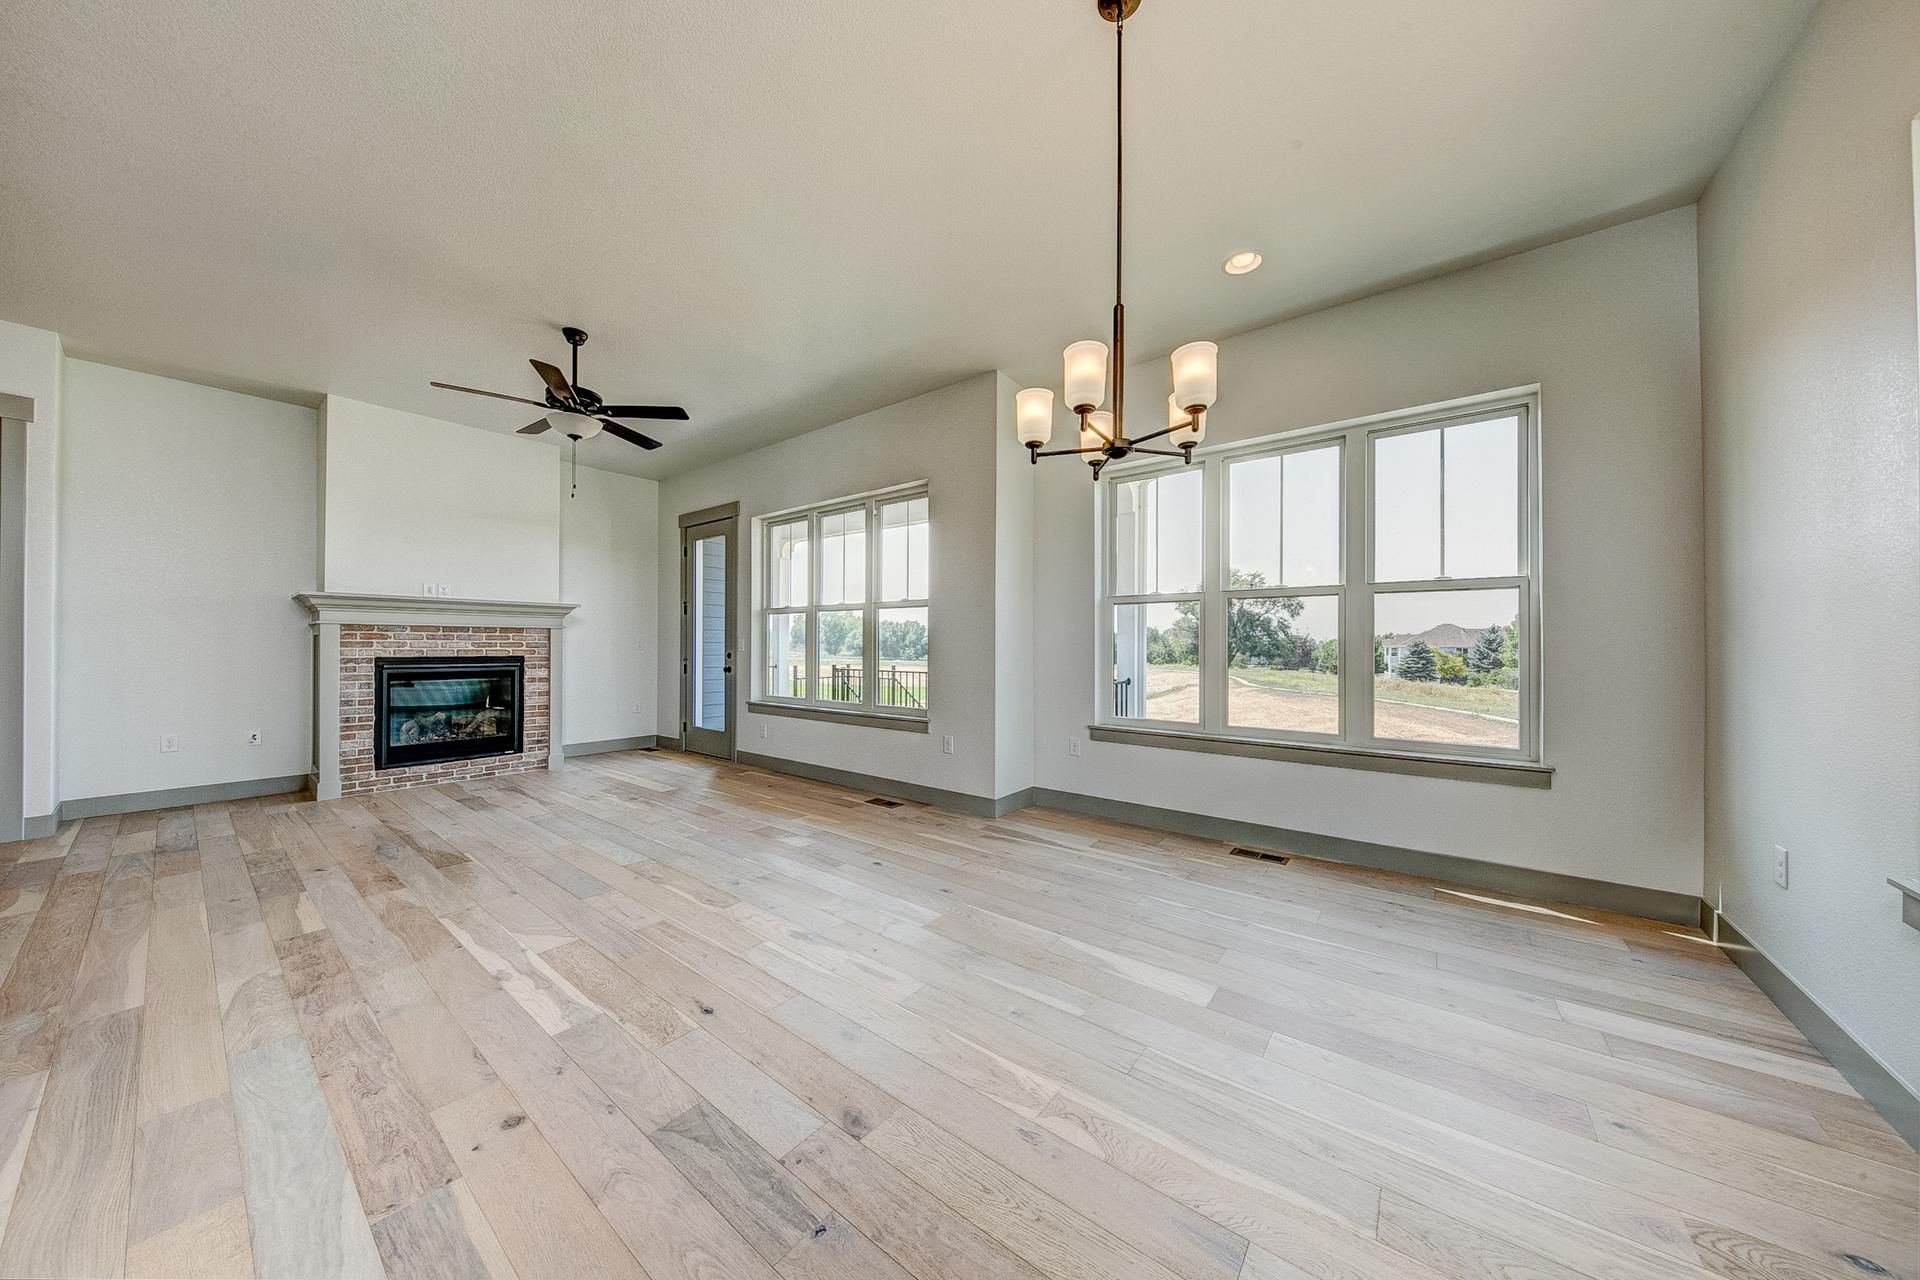 Dining & Living Room - Not Actual Home - Finishes Will Vary